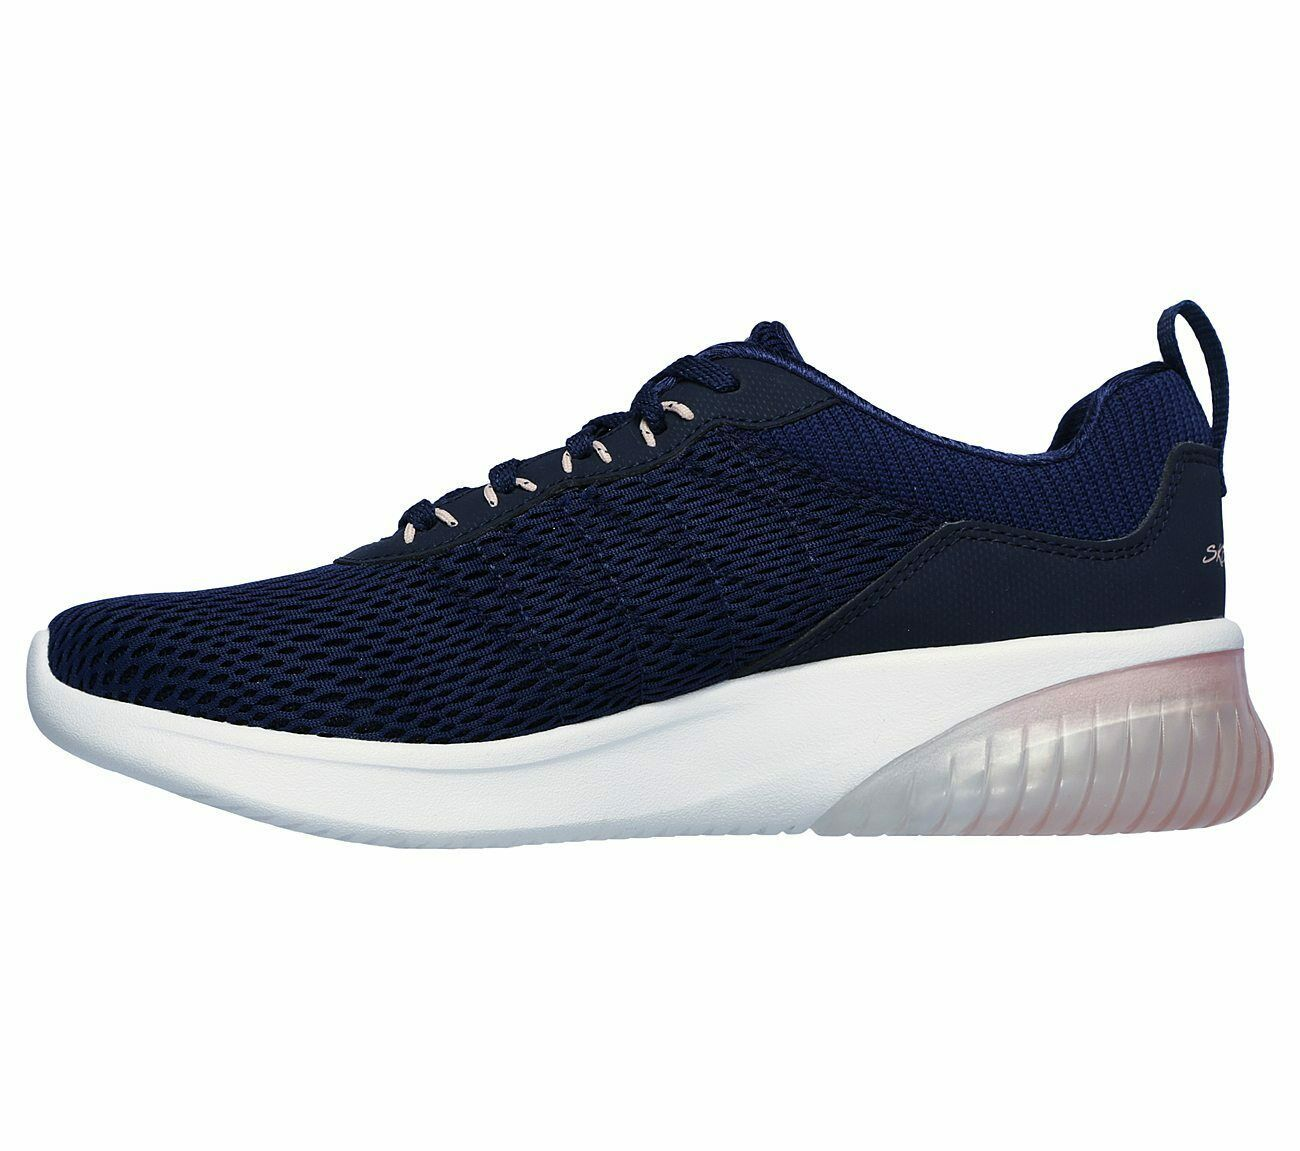 Skechers Navy Pink shoes Memory Foam Women's Sporty Air Ultra Flex Comfort 13290 image 3